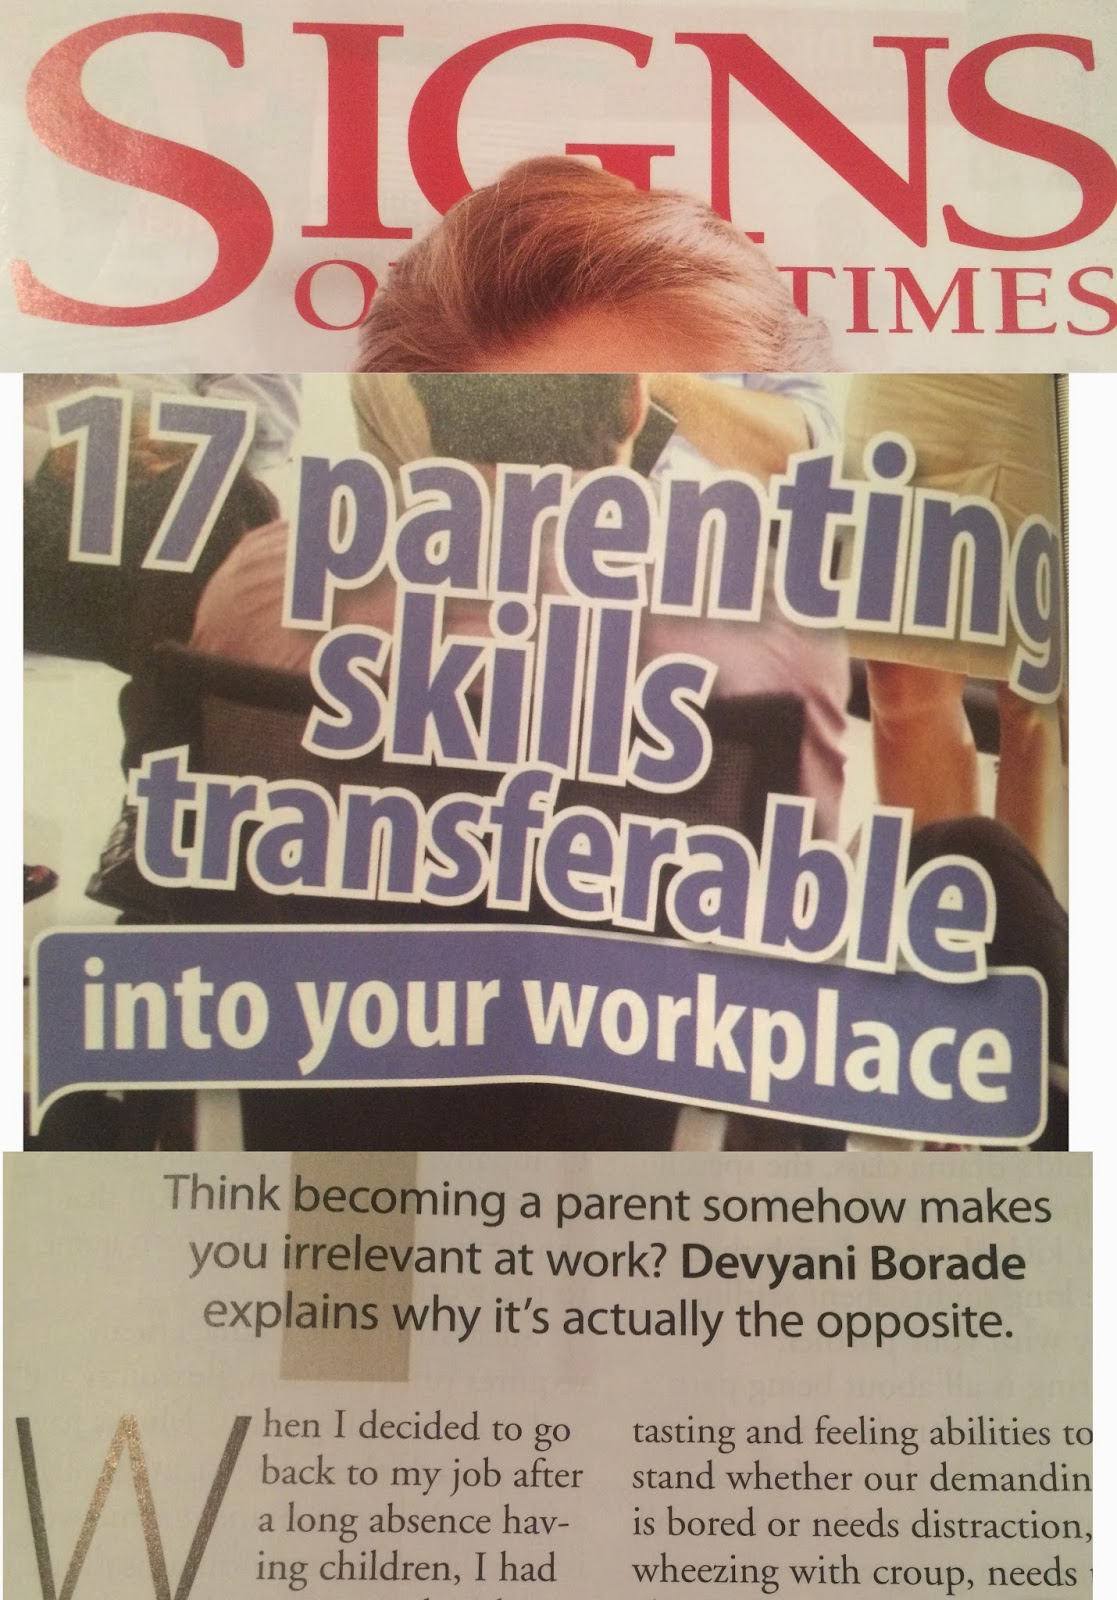 Verbolatry - Devyani Borade - 17 Parenting skills transferable into your workplace - Signs Of The Times